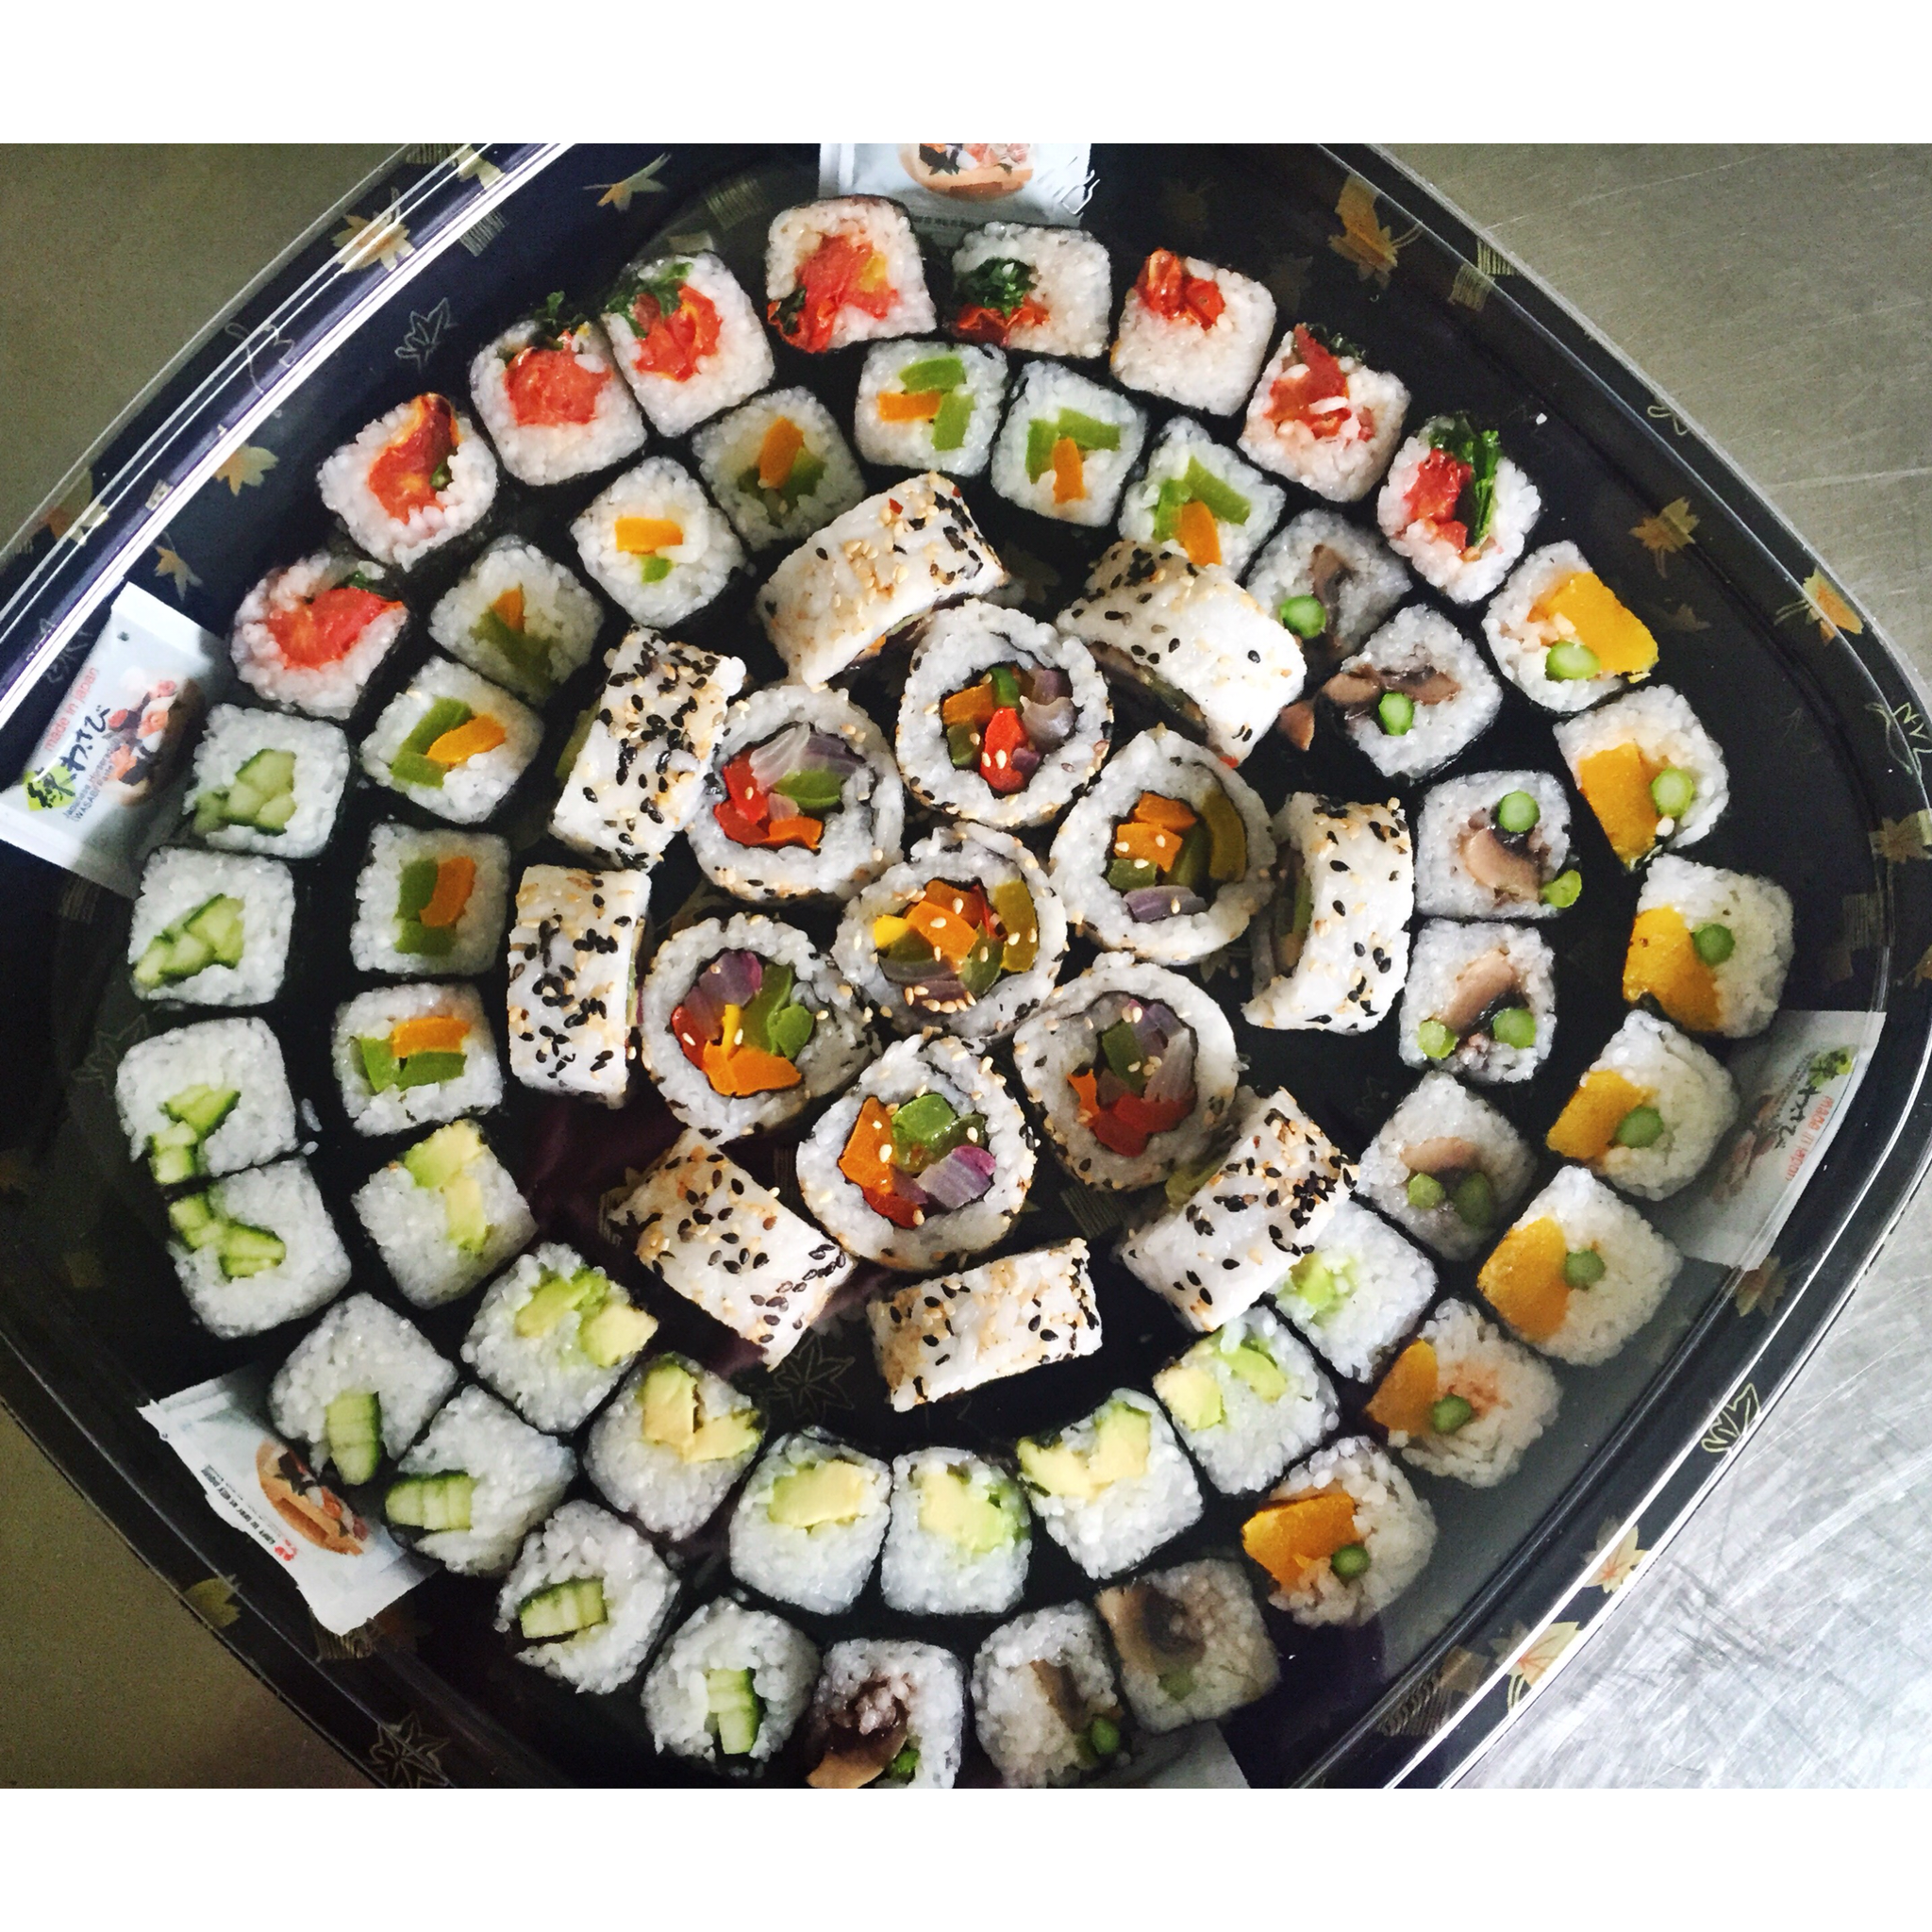 The Veggie Roll & Maki Platter - £30